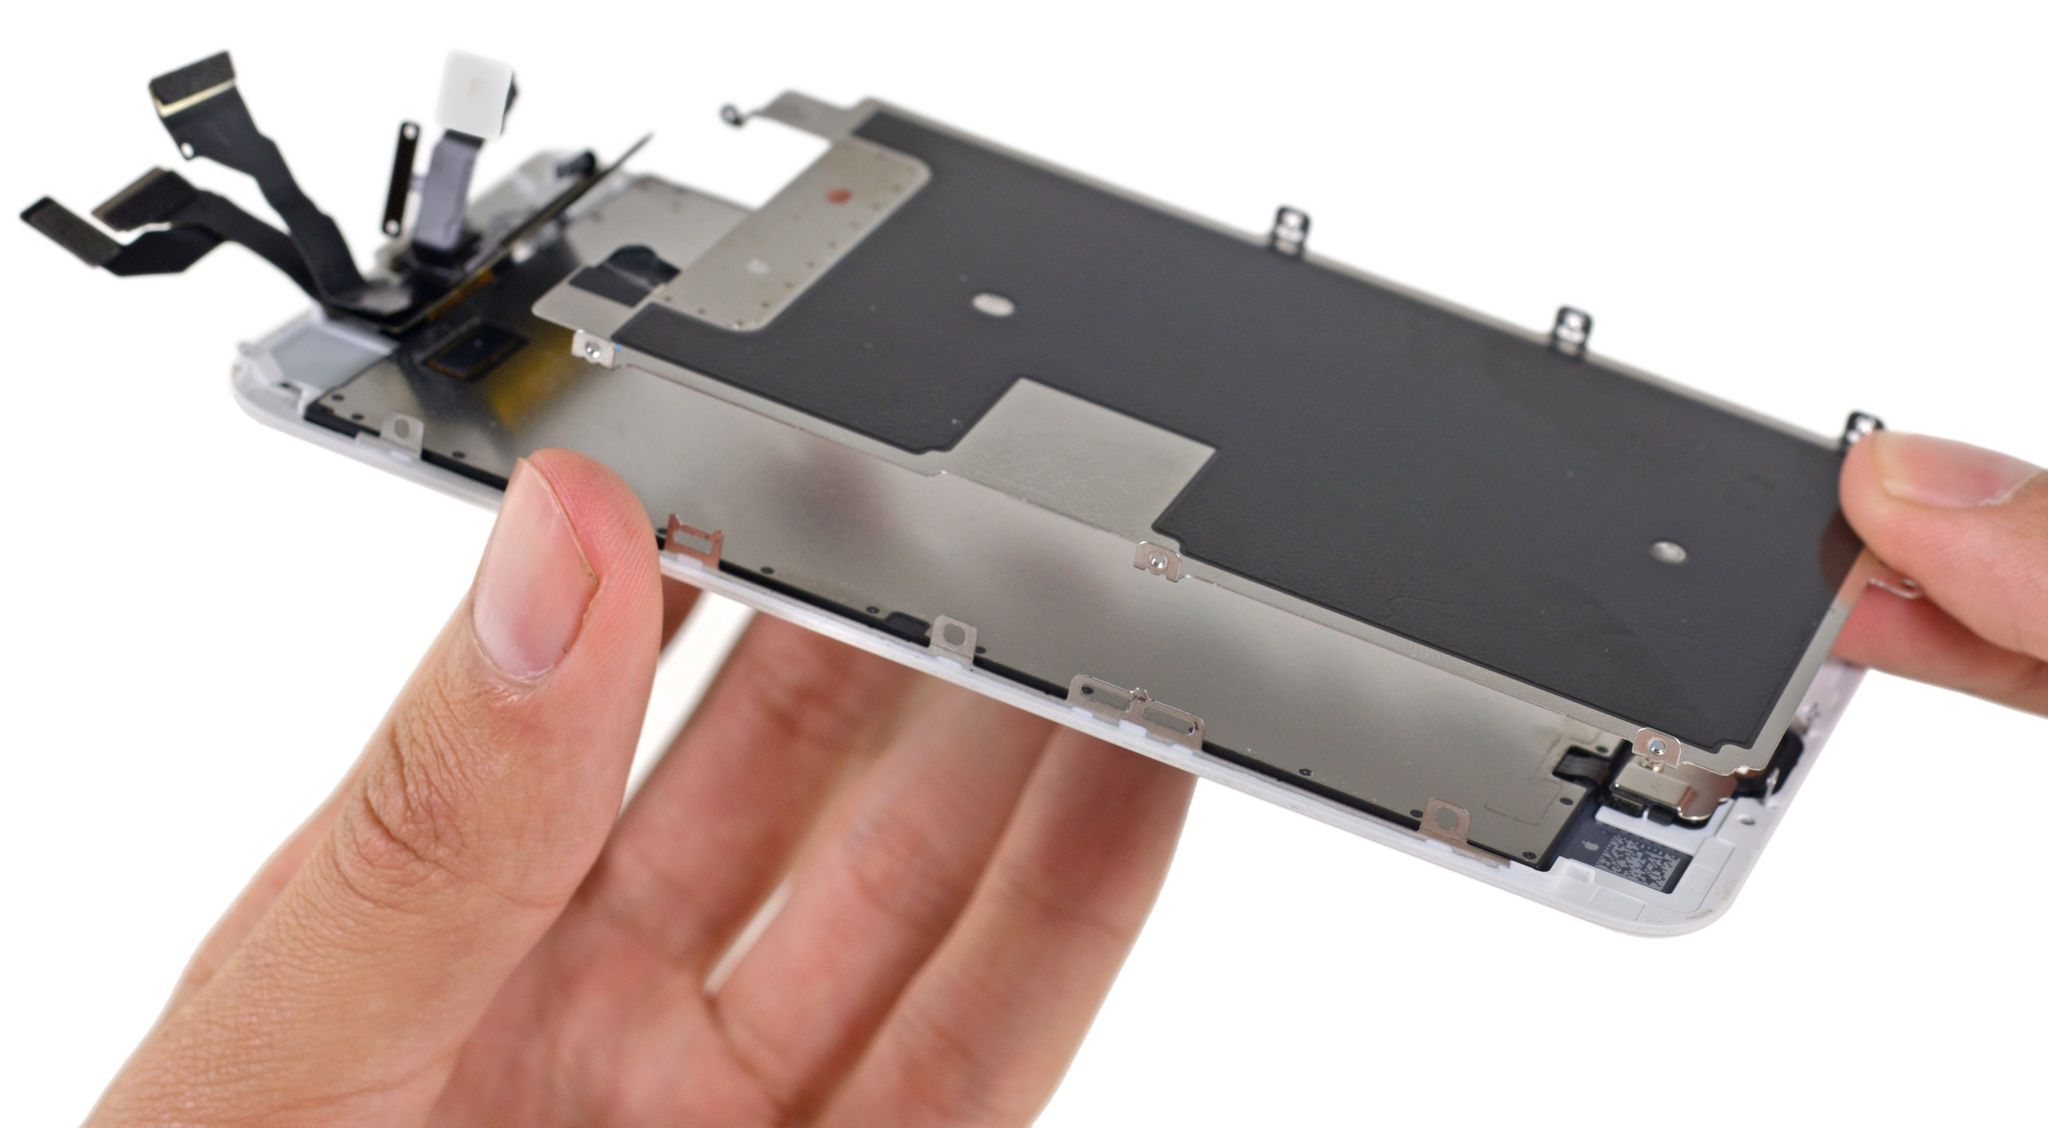 iFixit iPhone 6s teardown image 002 3D Touch